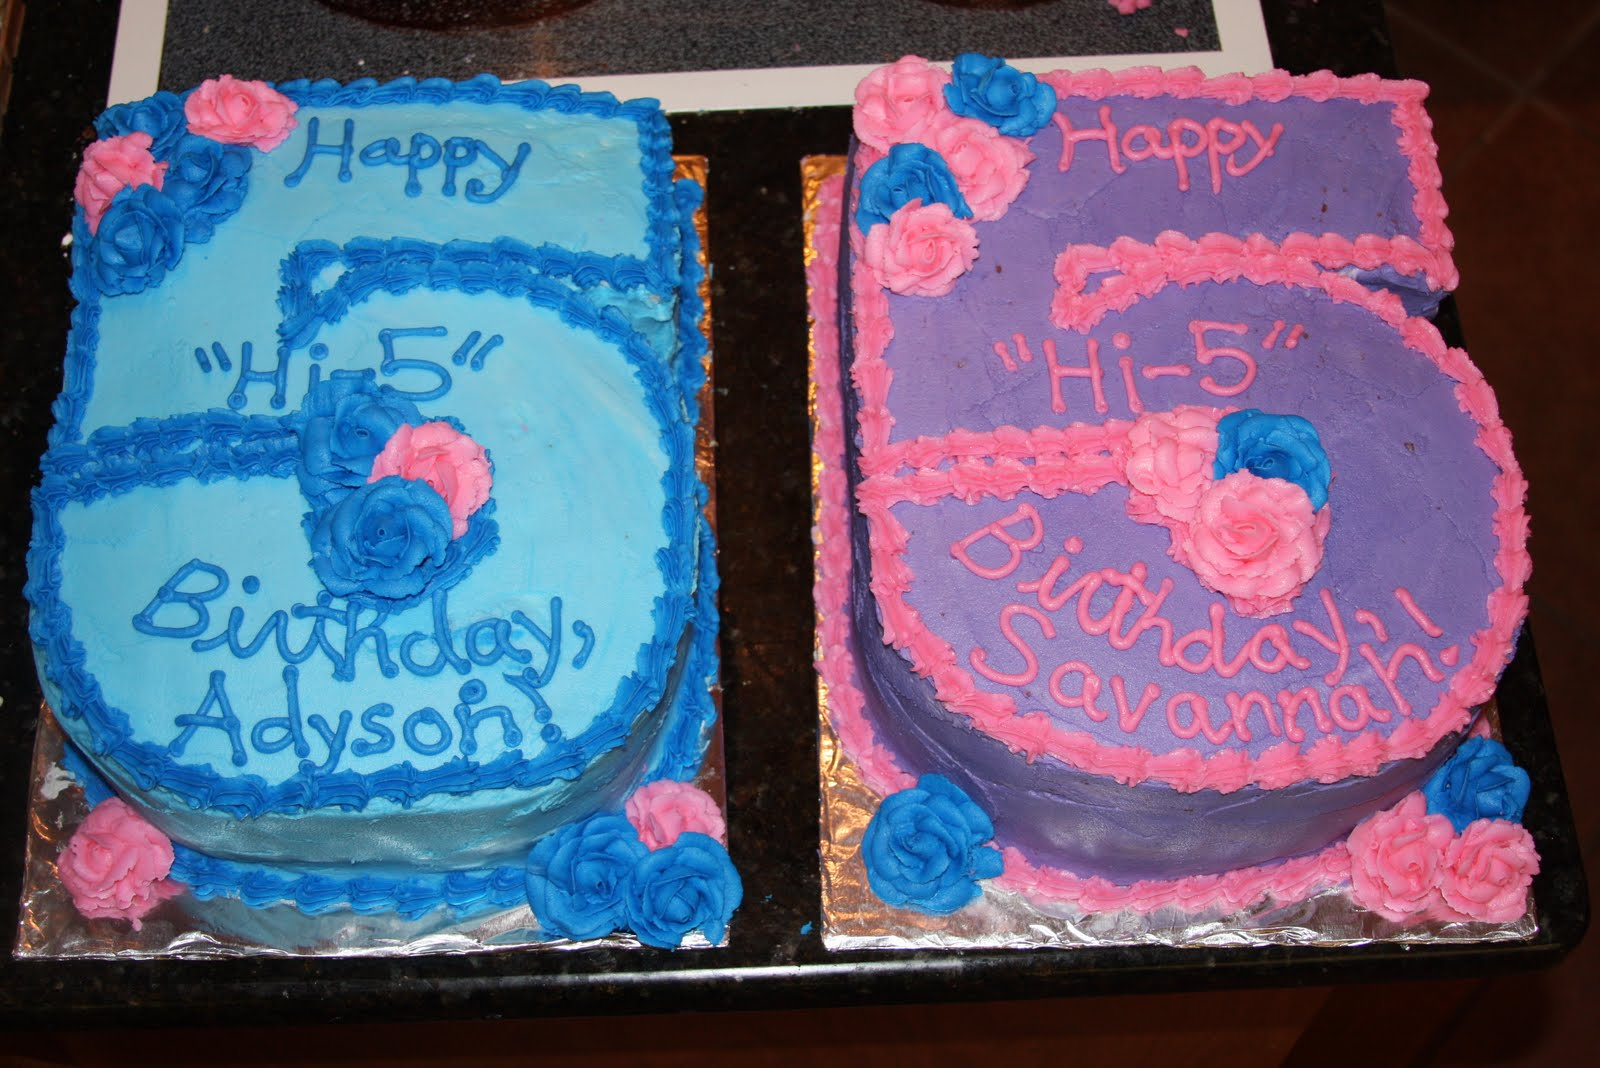 Can I Make Your Cake Happy Hi 5 Birthday For Twins